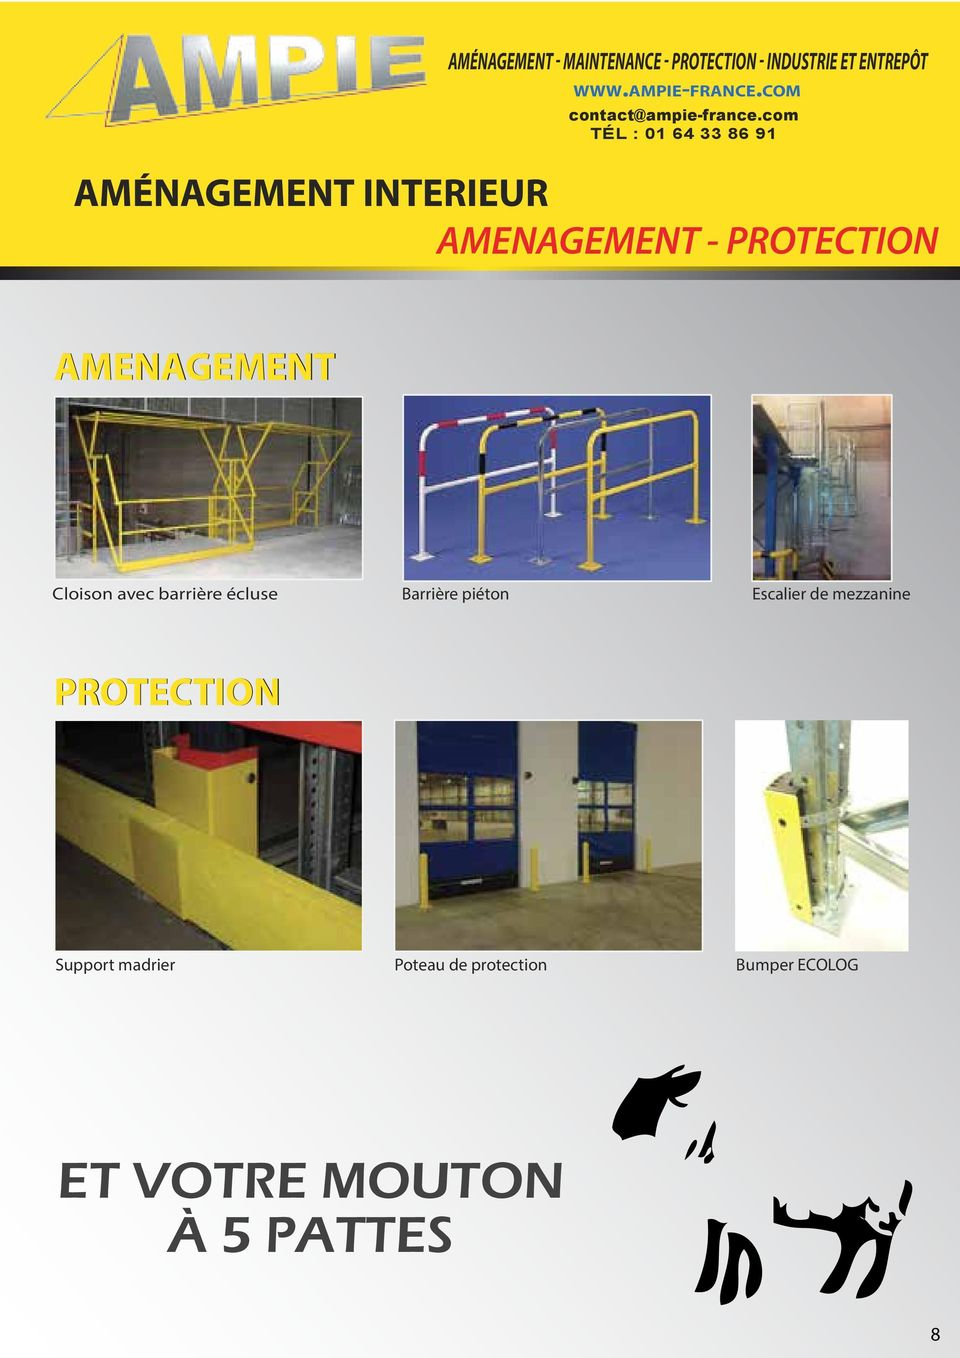 piéton Escalier de mezzanine PROTECTION Support